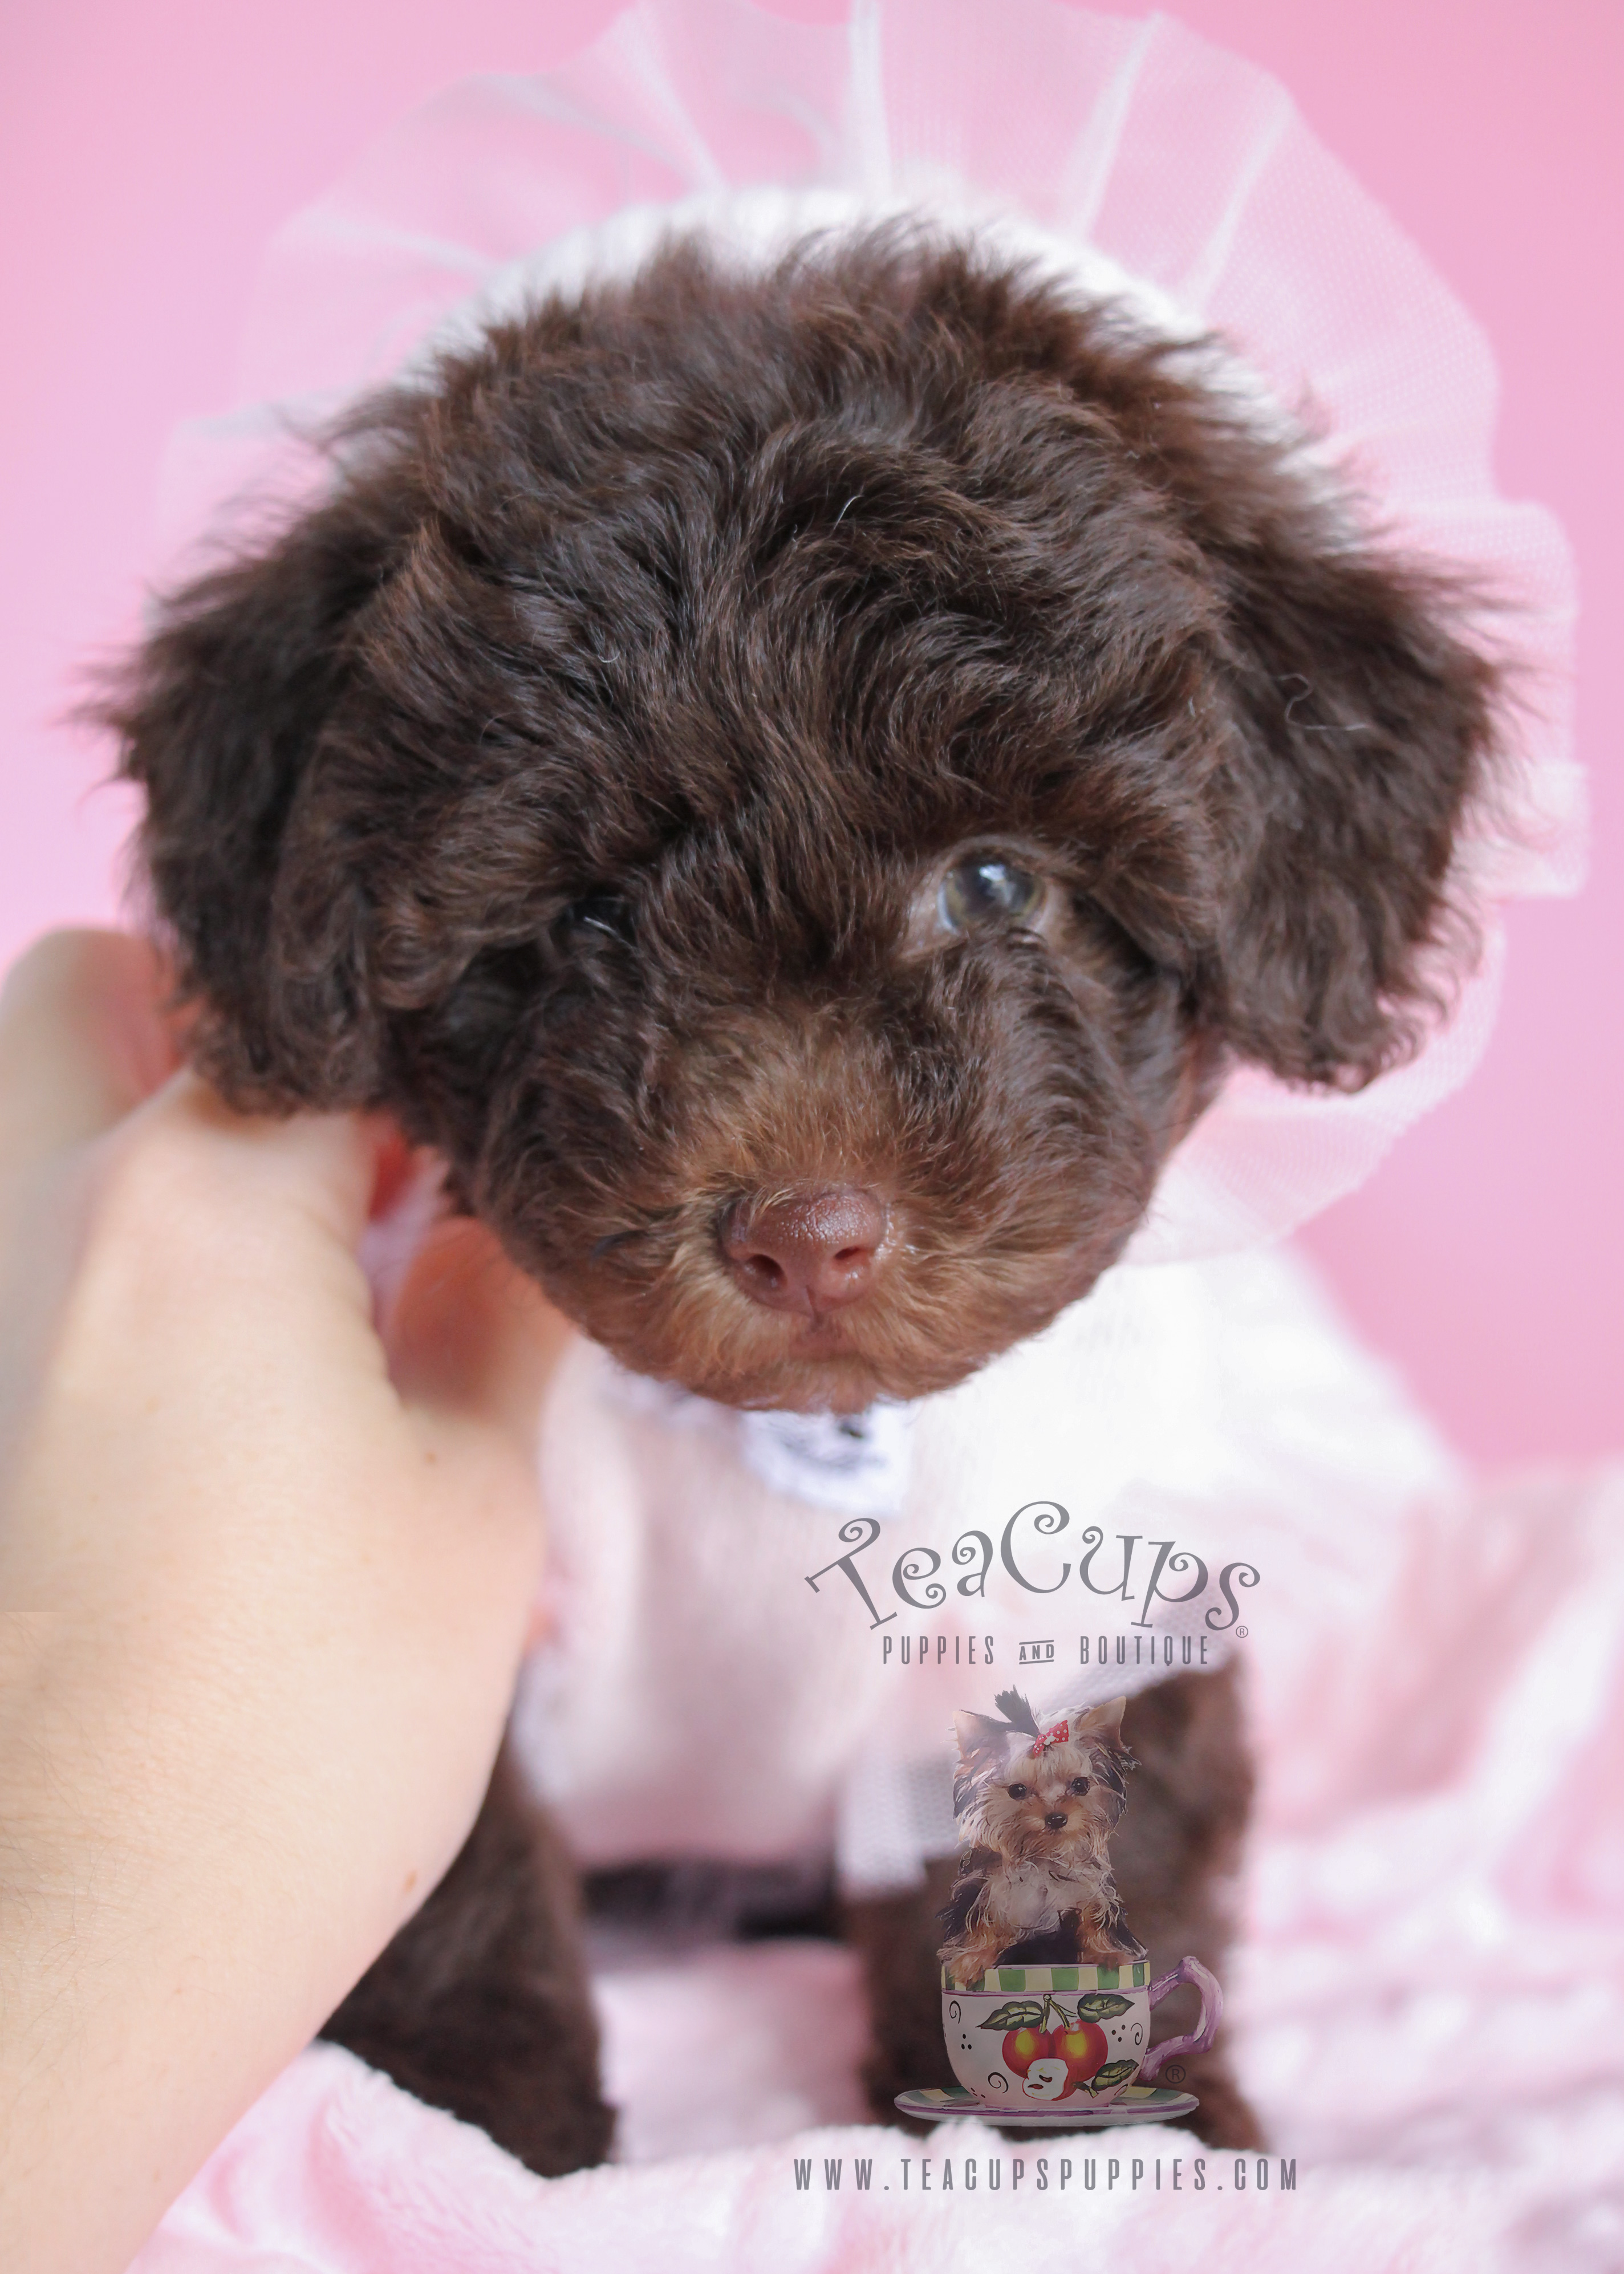 Female Toy Chocolate Poodle Puppies For Sale